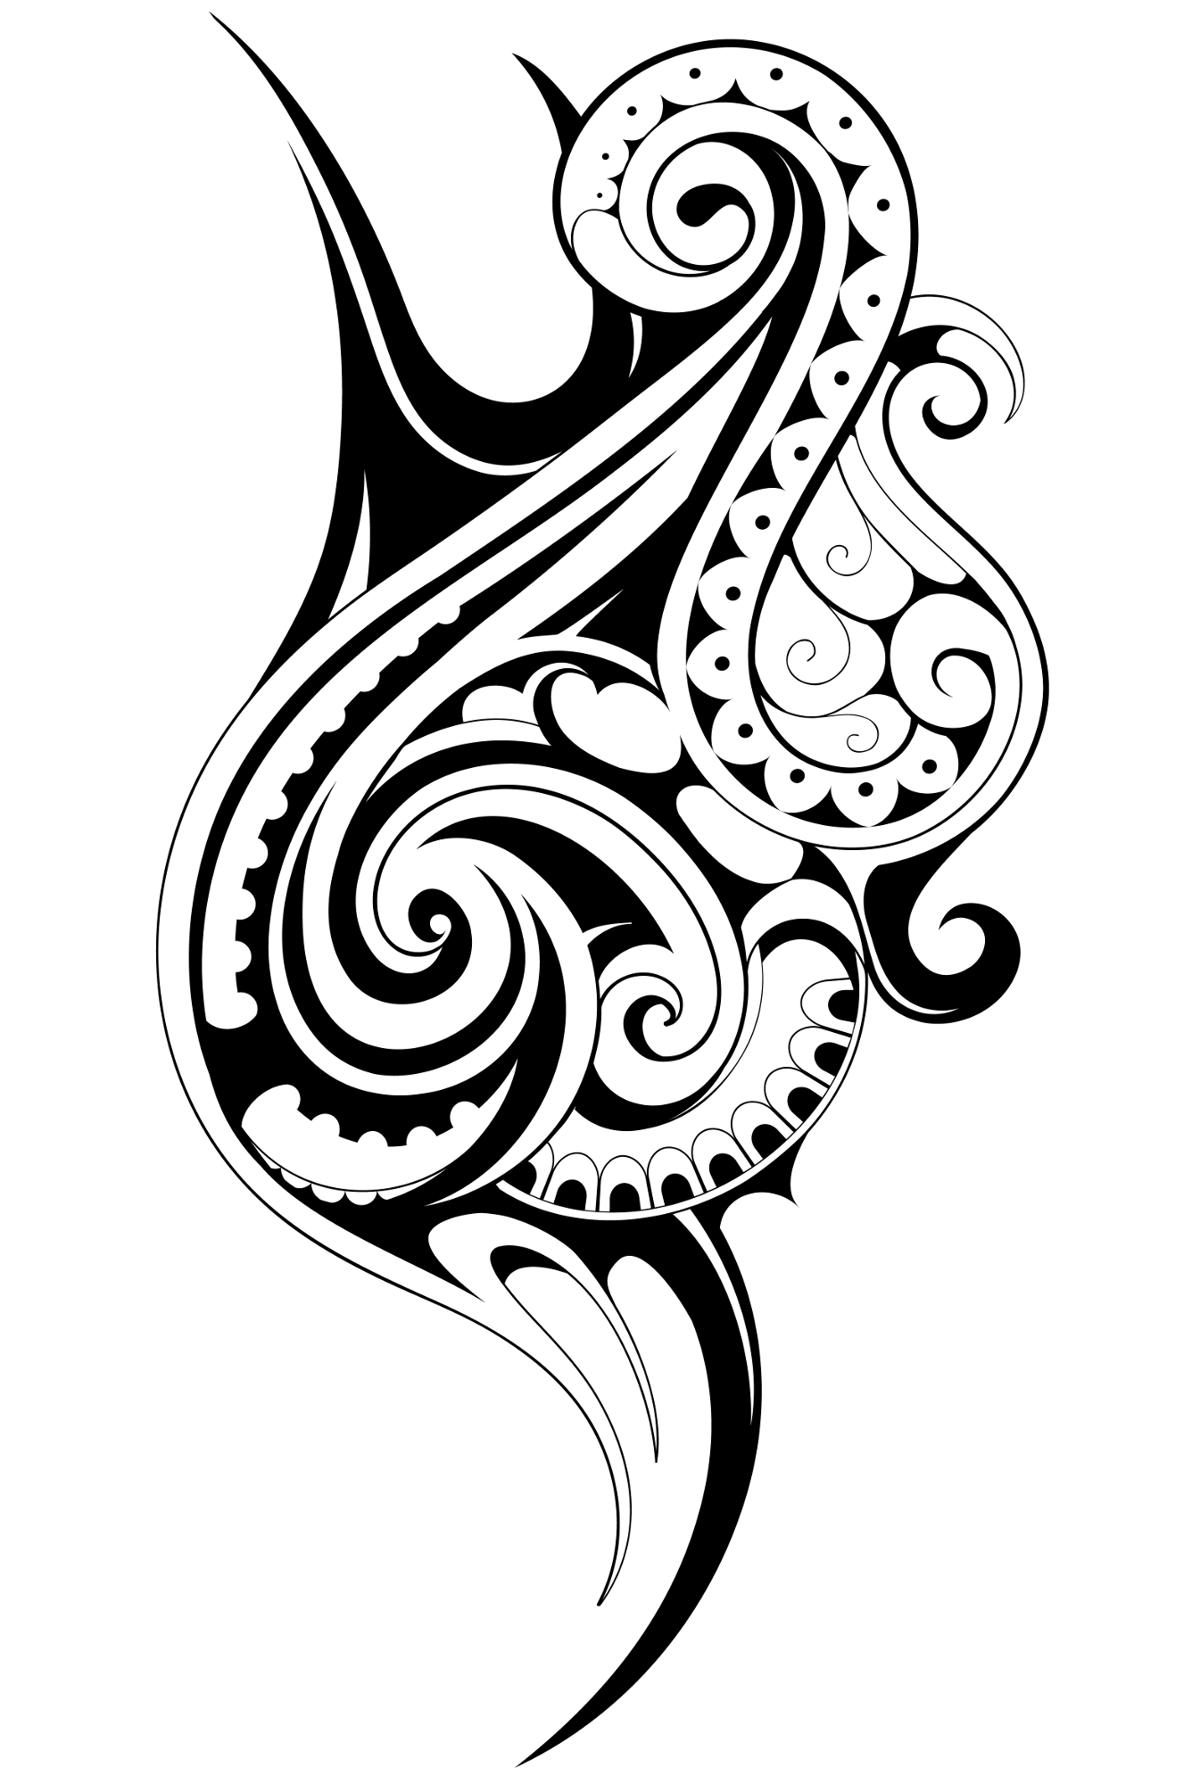 samoan tribal drawing at free for personal use samoan tribal drawing of your. Black Bedroom Furniture Sets. Home Design Ideas